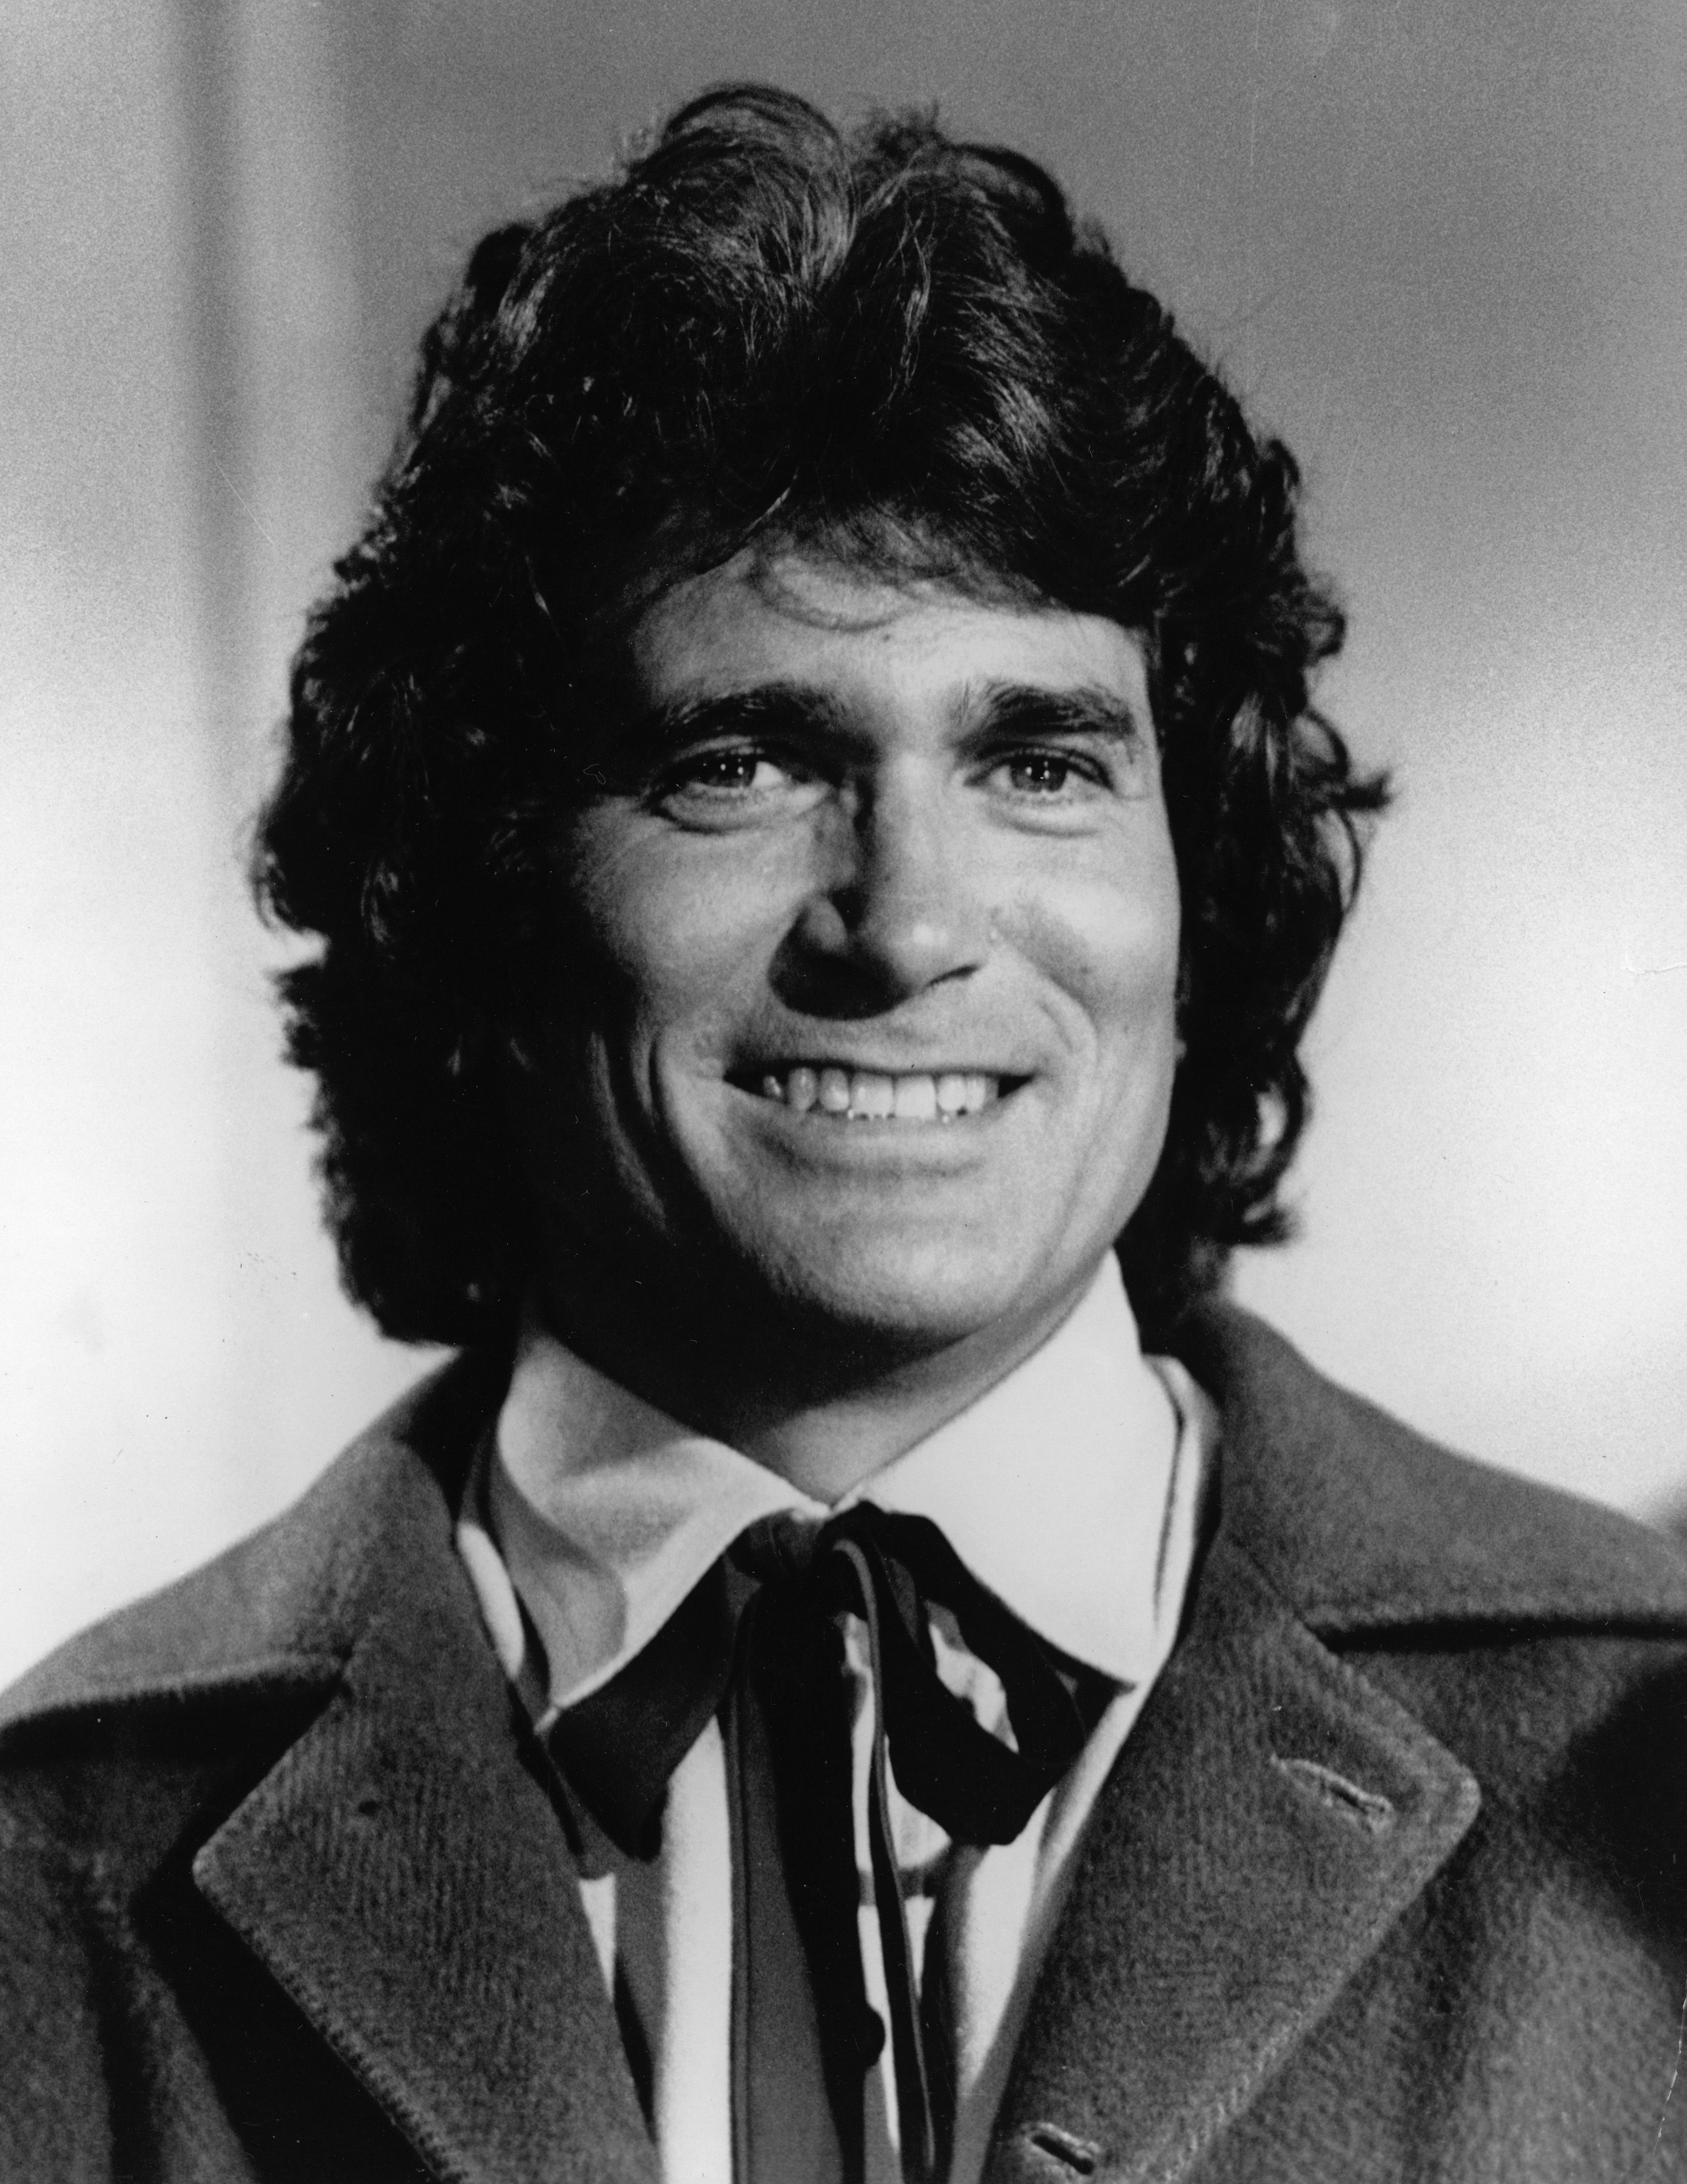 michael landon ~ bonanza and little house on the prairietwo of